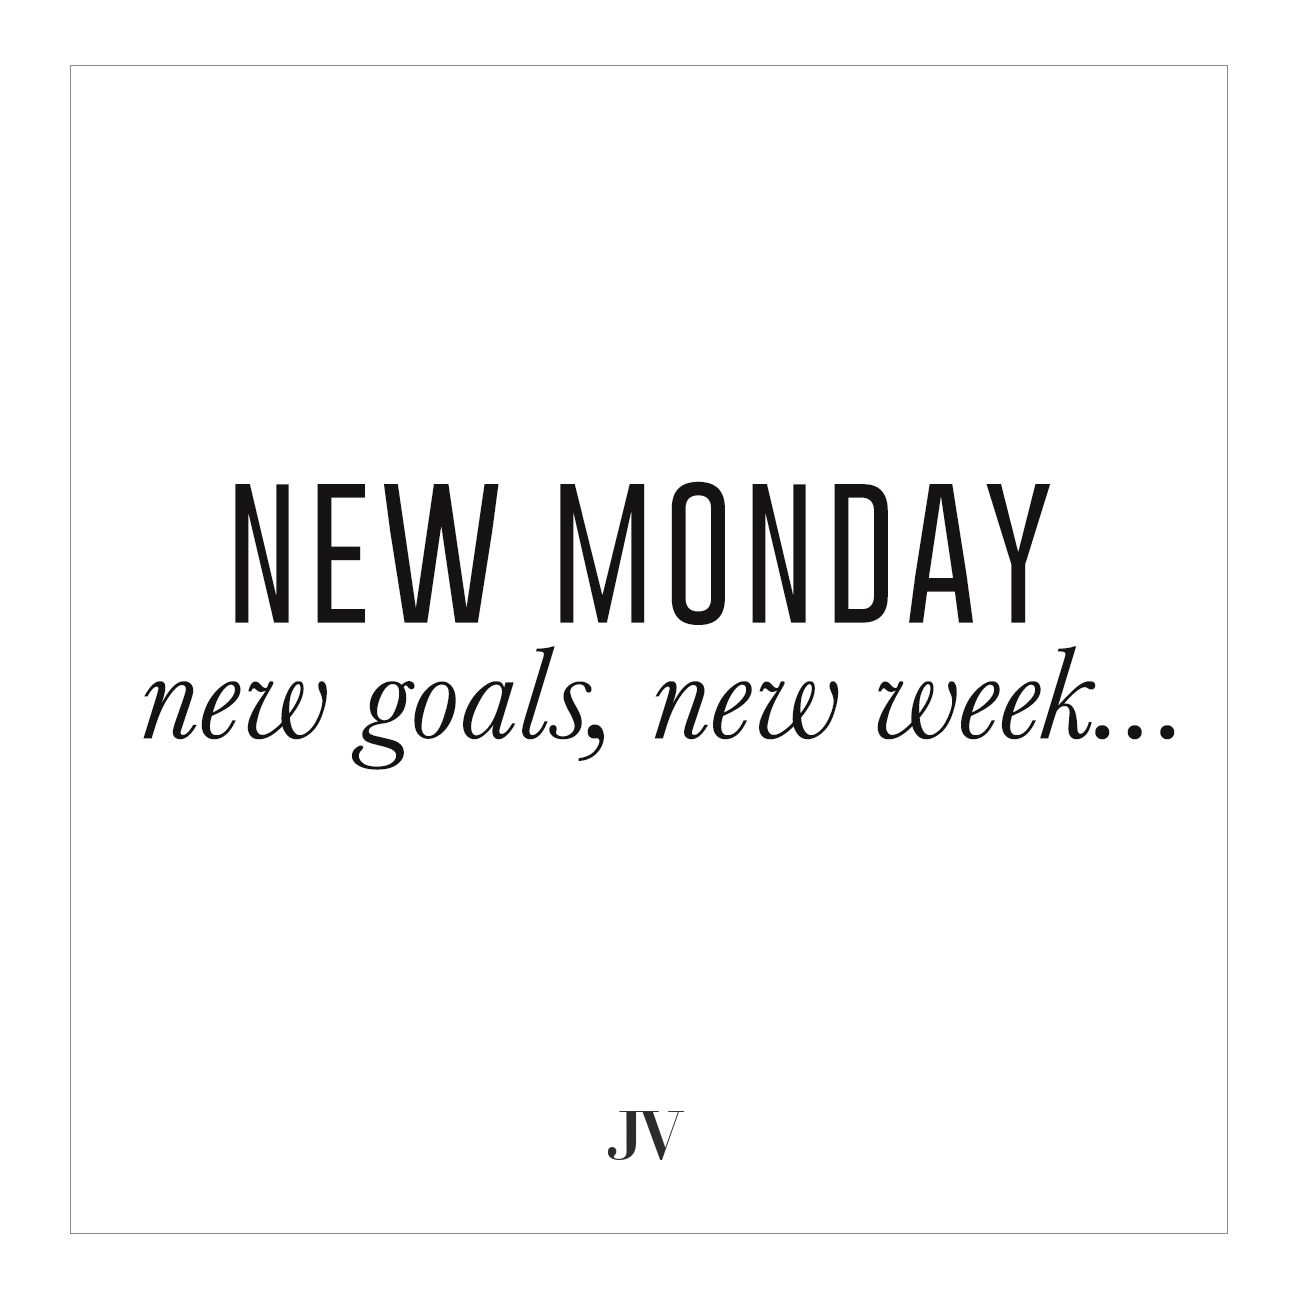 Week Quotes Captivating Josh V  New Monday New Goals New Week  Quote  Days Of The Week